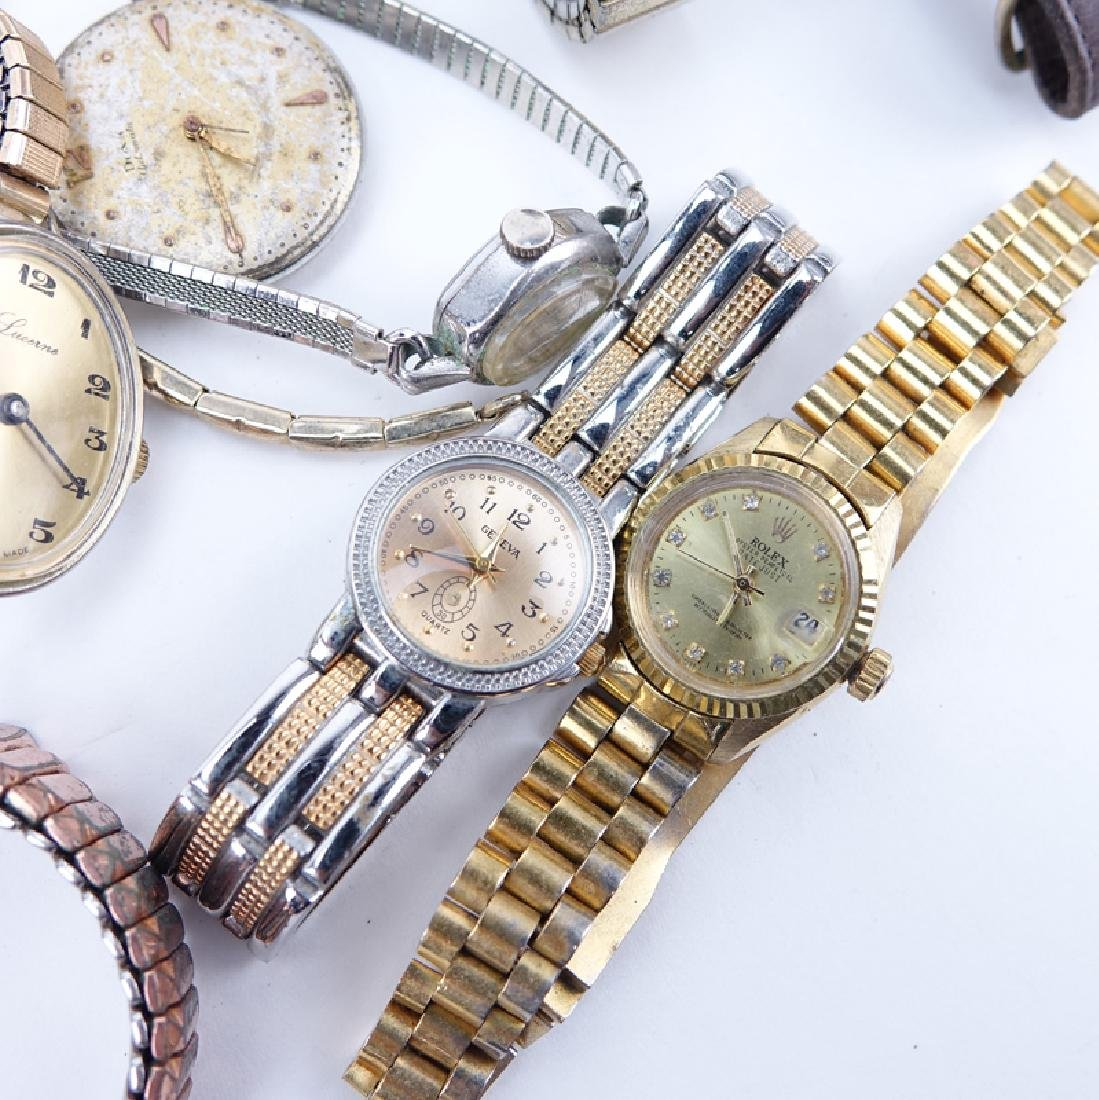 Collection of Vintage Watches, Pocket Watches, and - 2